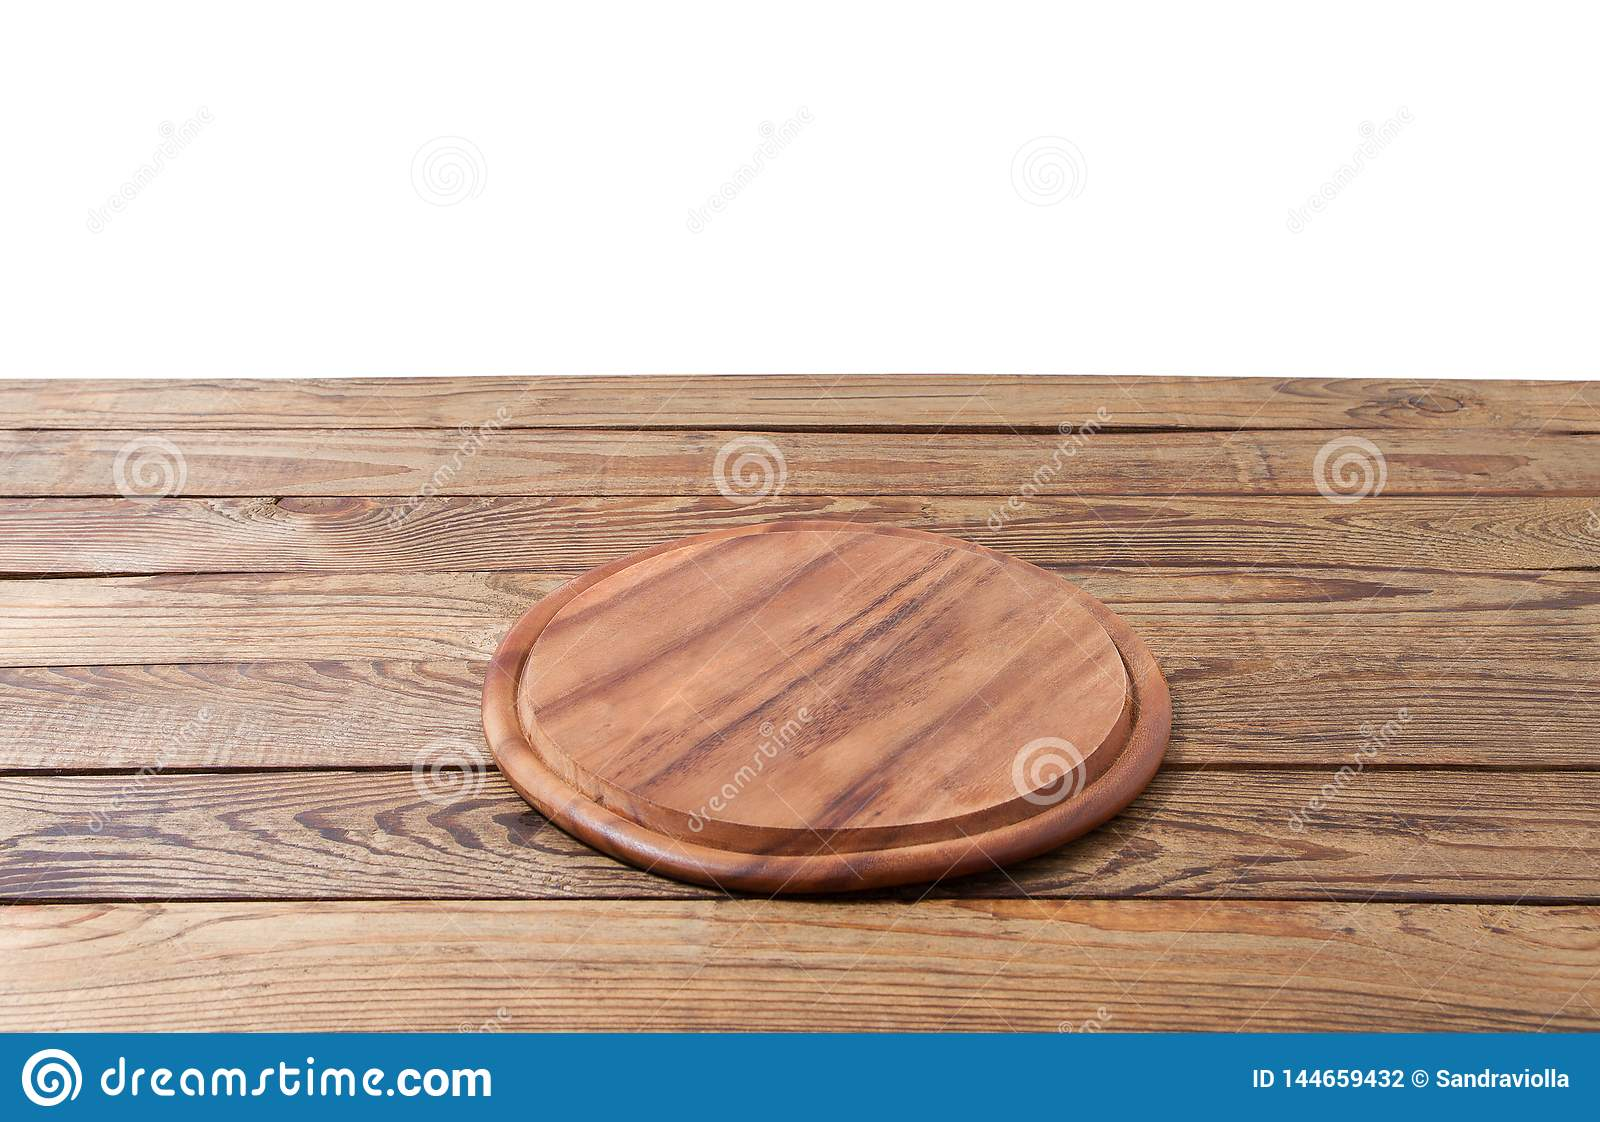 Tremendous Round Pizza Food Cutting Board On Brown Wooden Table Machost Co Dining Chair Design Ideas Machostcouk